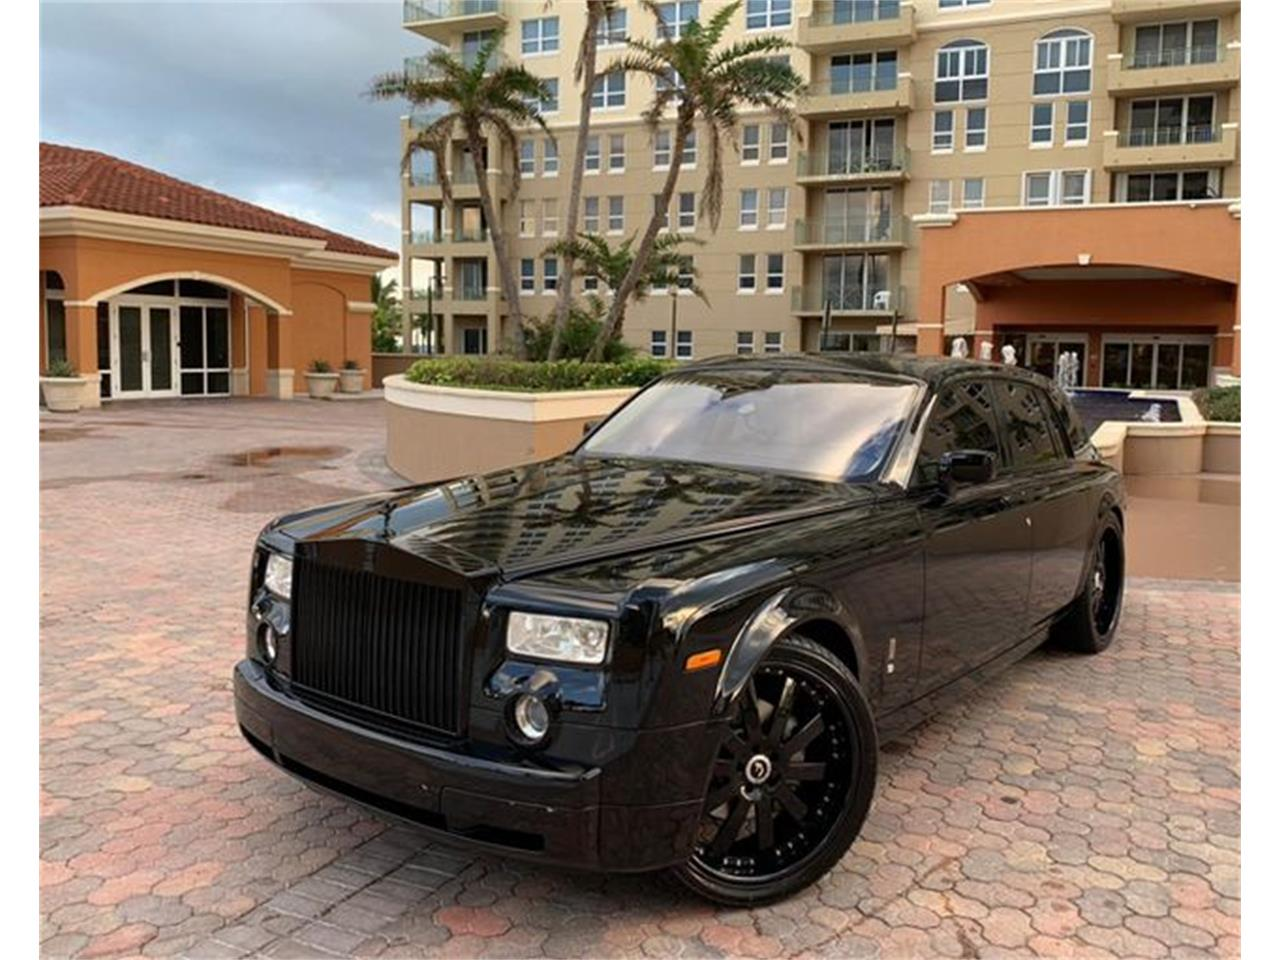 2006 Rolls-Royce Phantom for sale in Valley Park, MO – photo 76